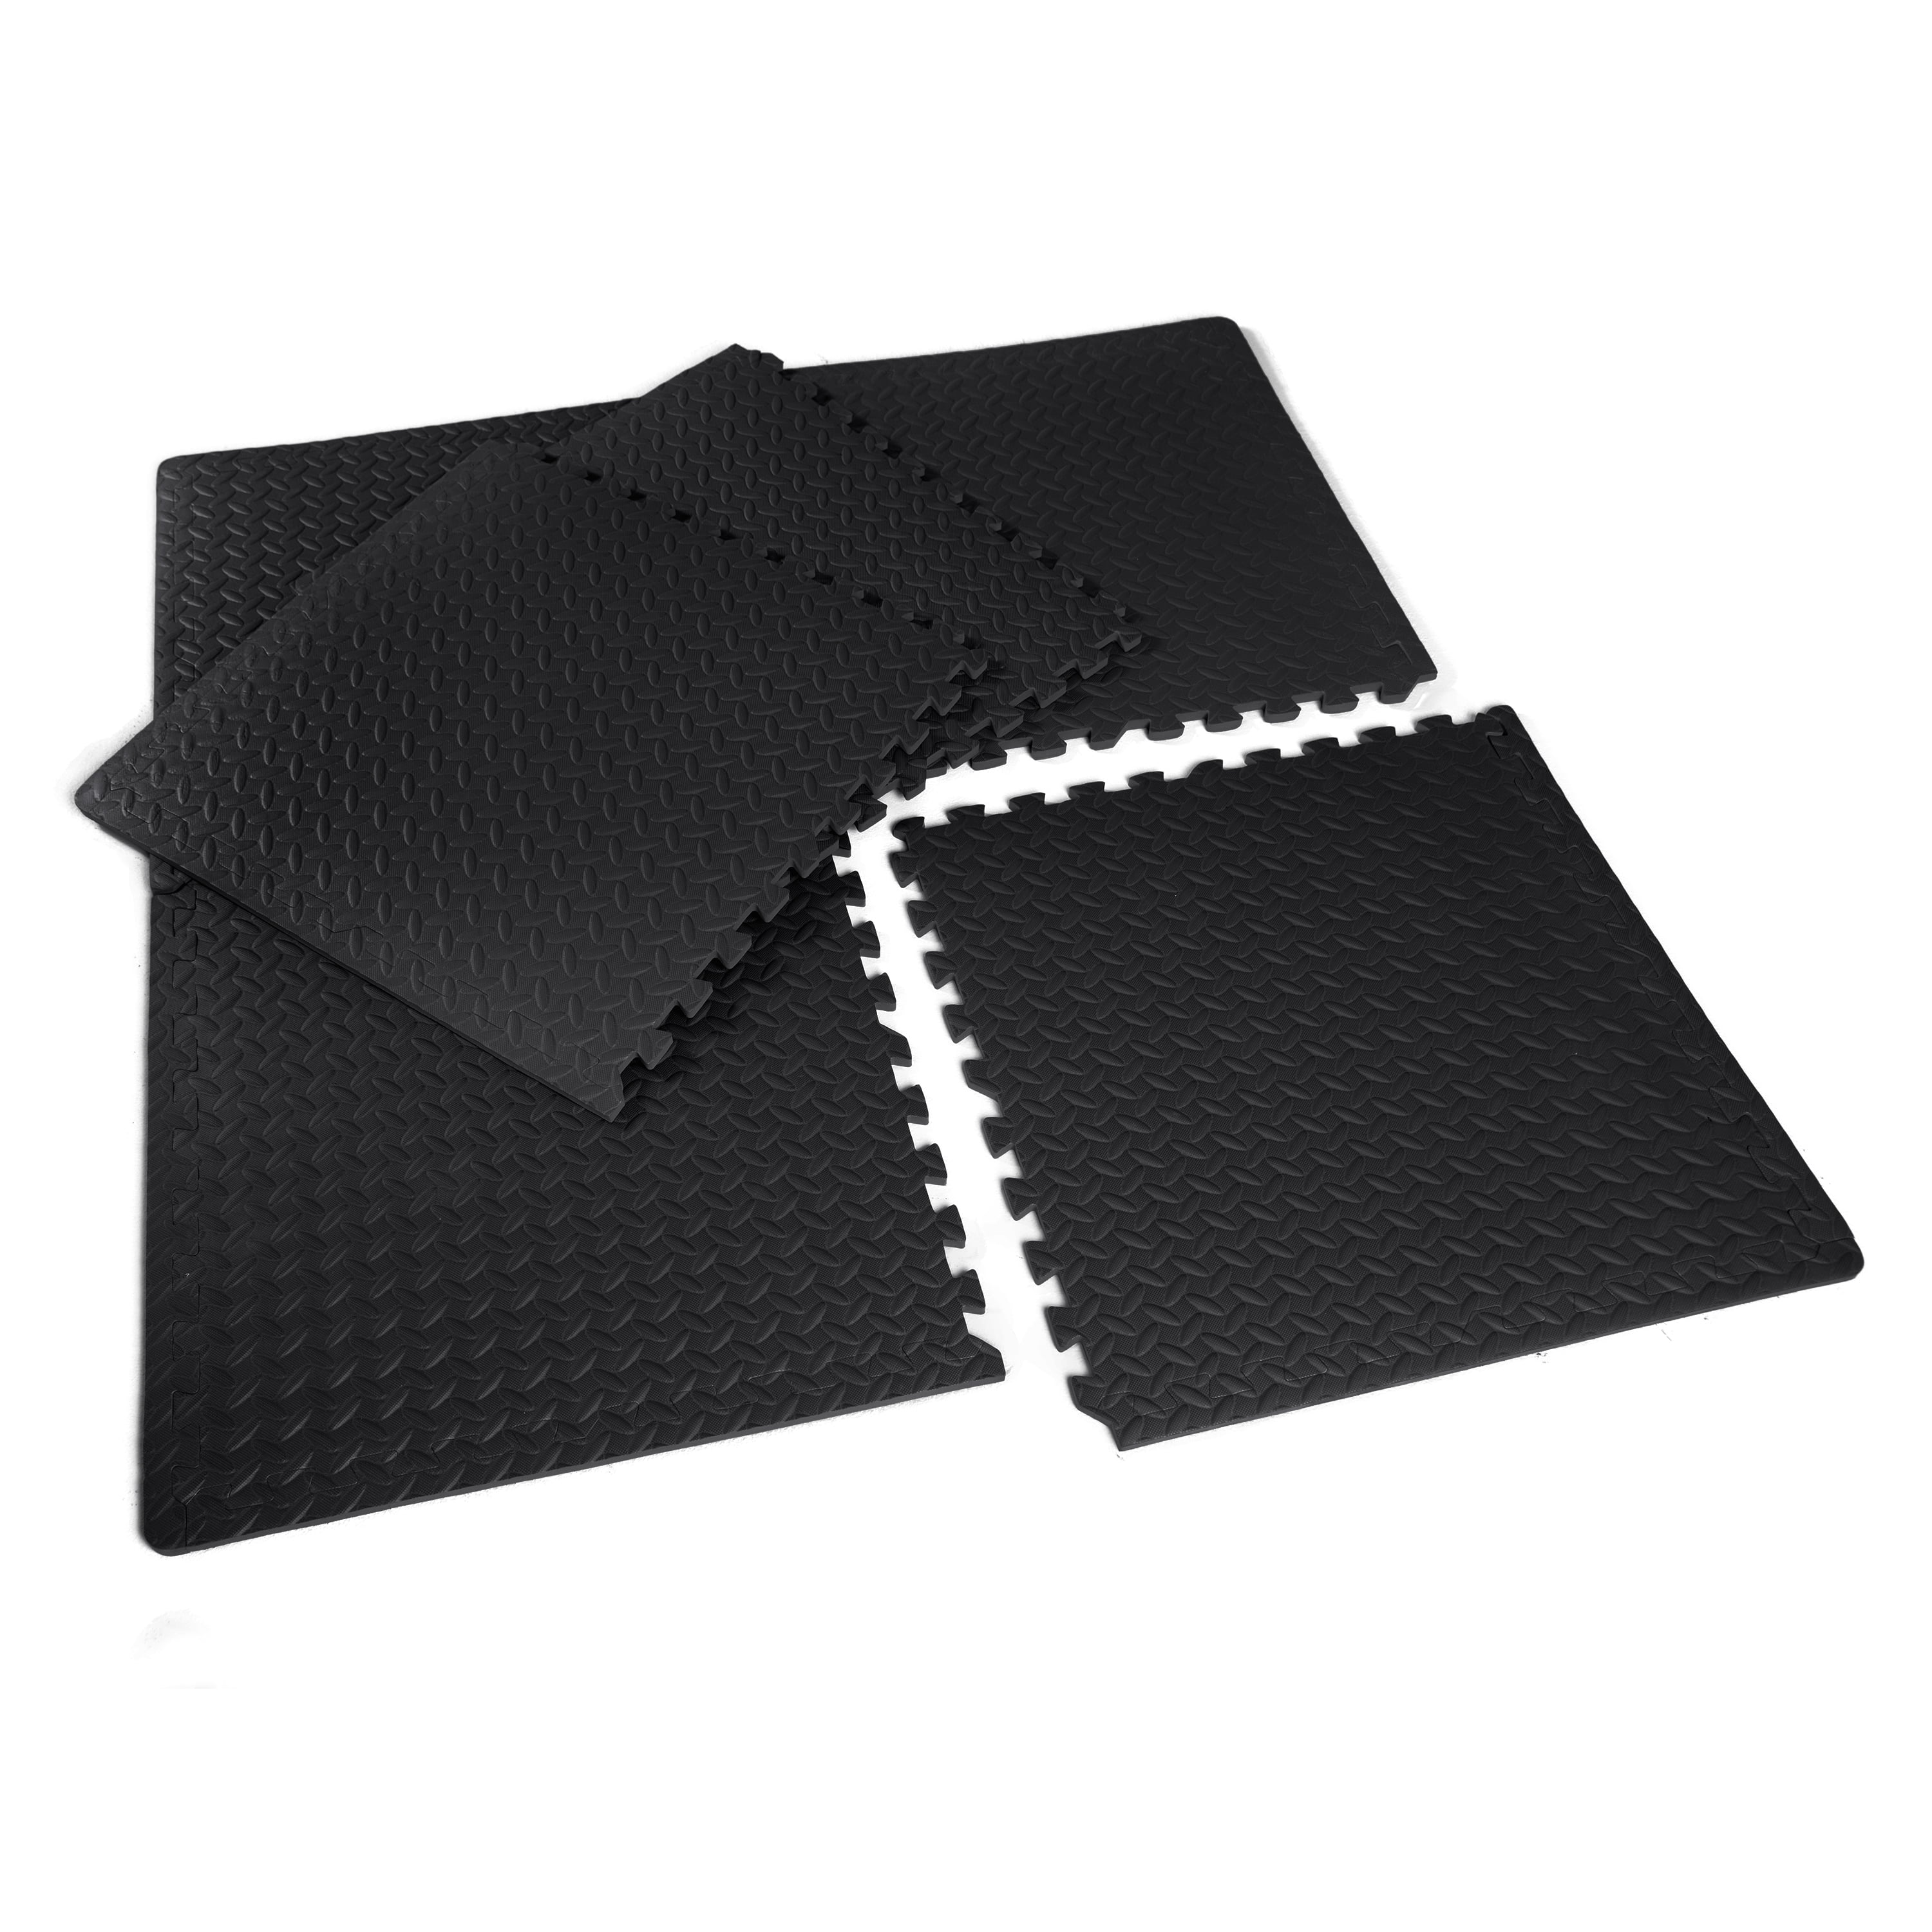 Cap barbell high impact flooring puzzle exercise gym mat pieces